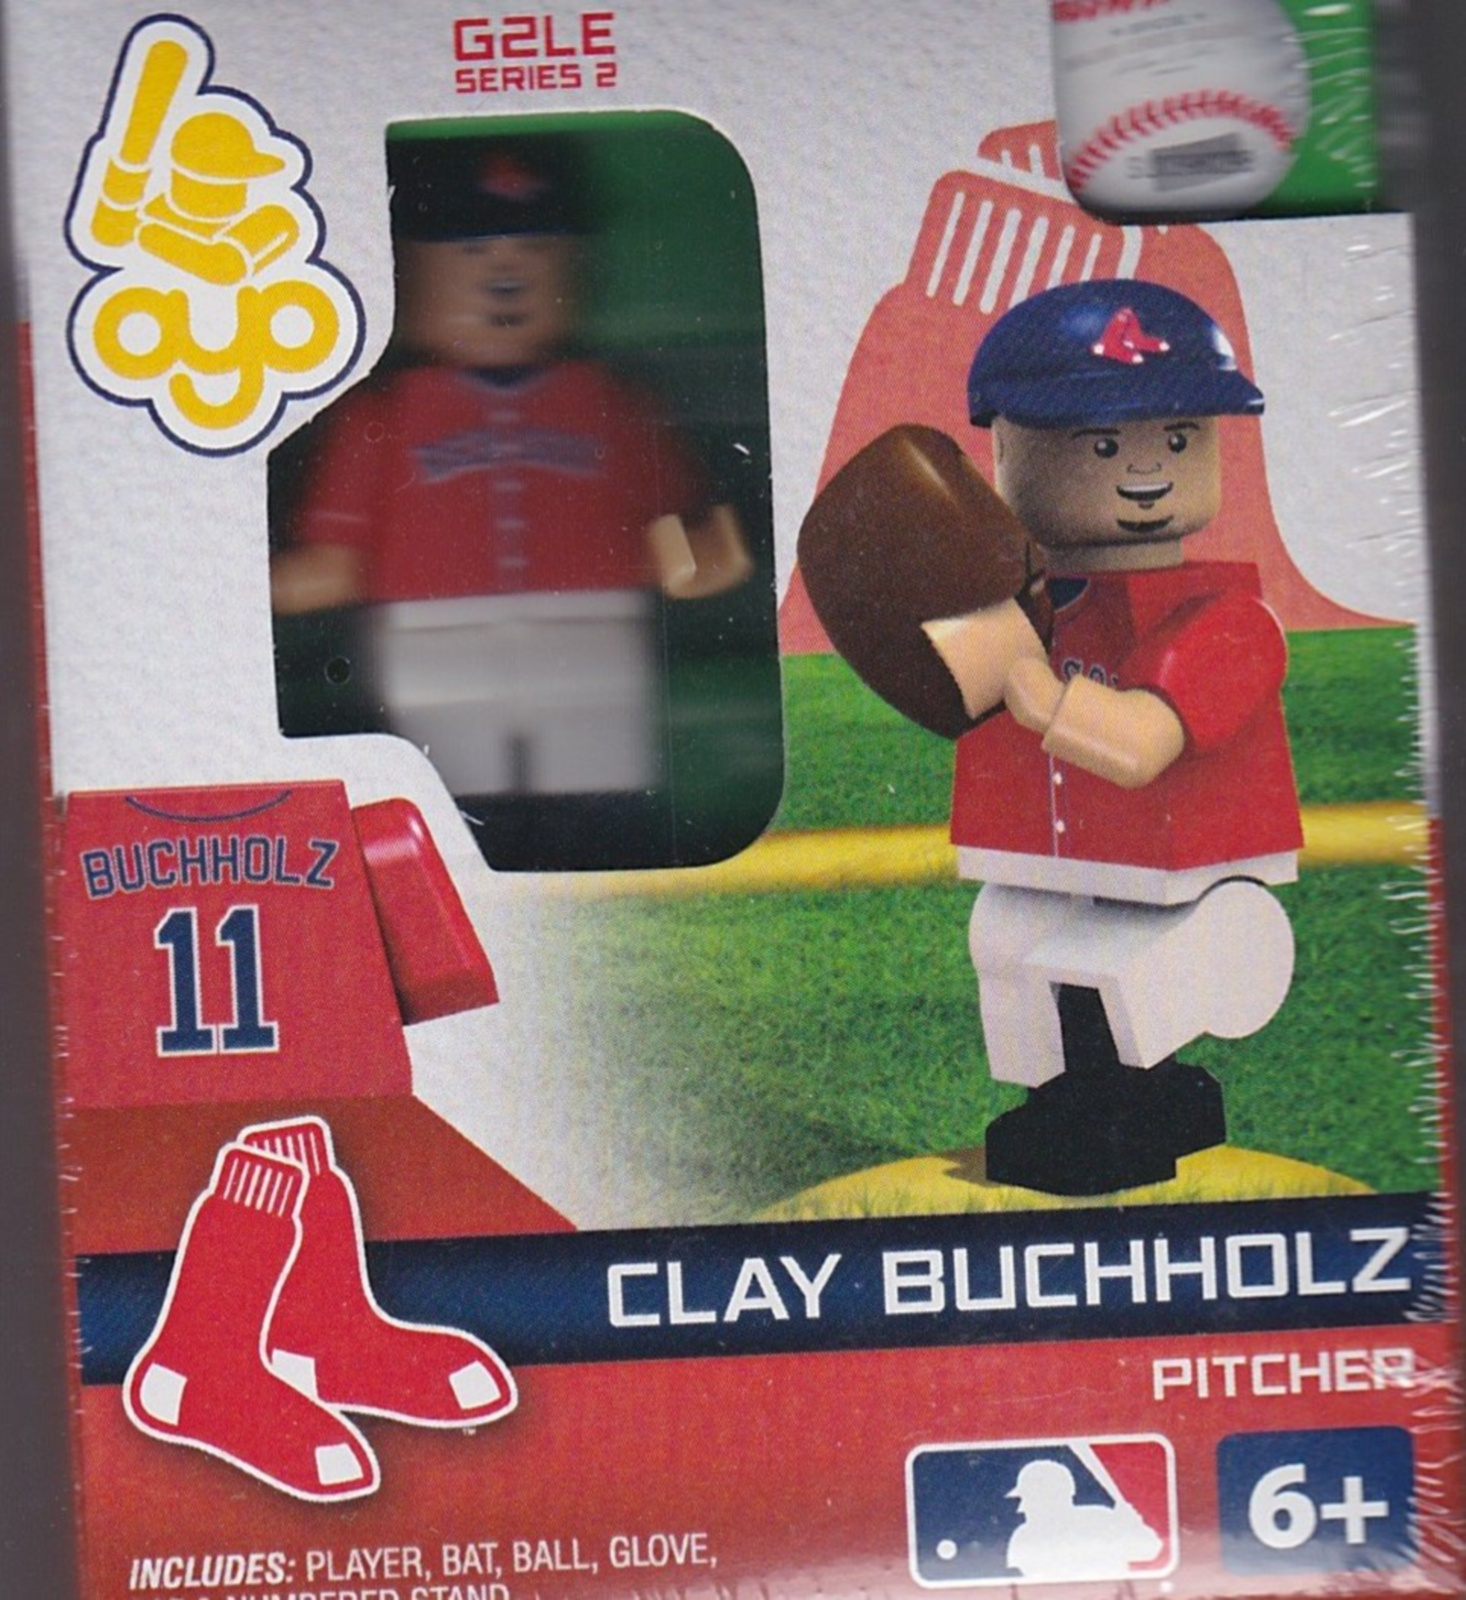 Clay Buchholz OYO Baseball figure Series 2 G2LE Boston Red Sox